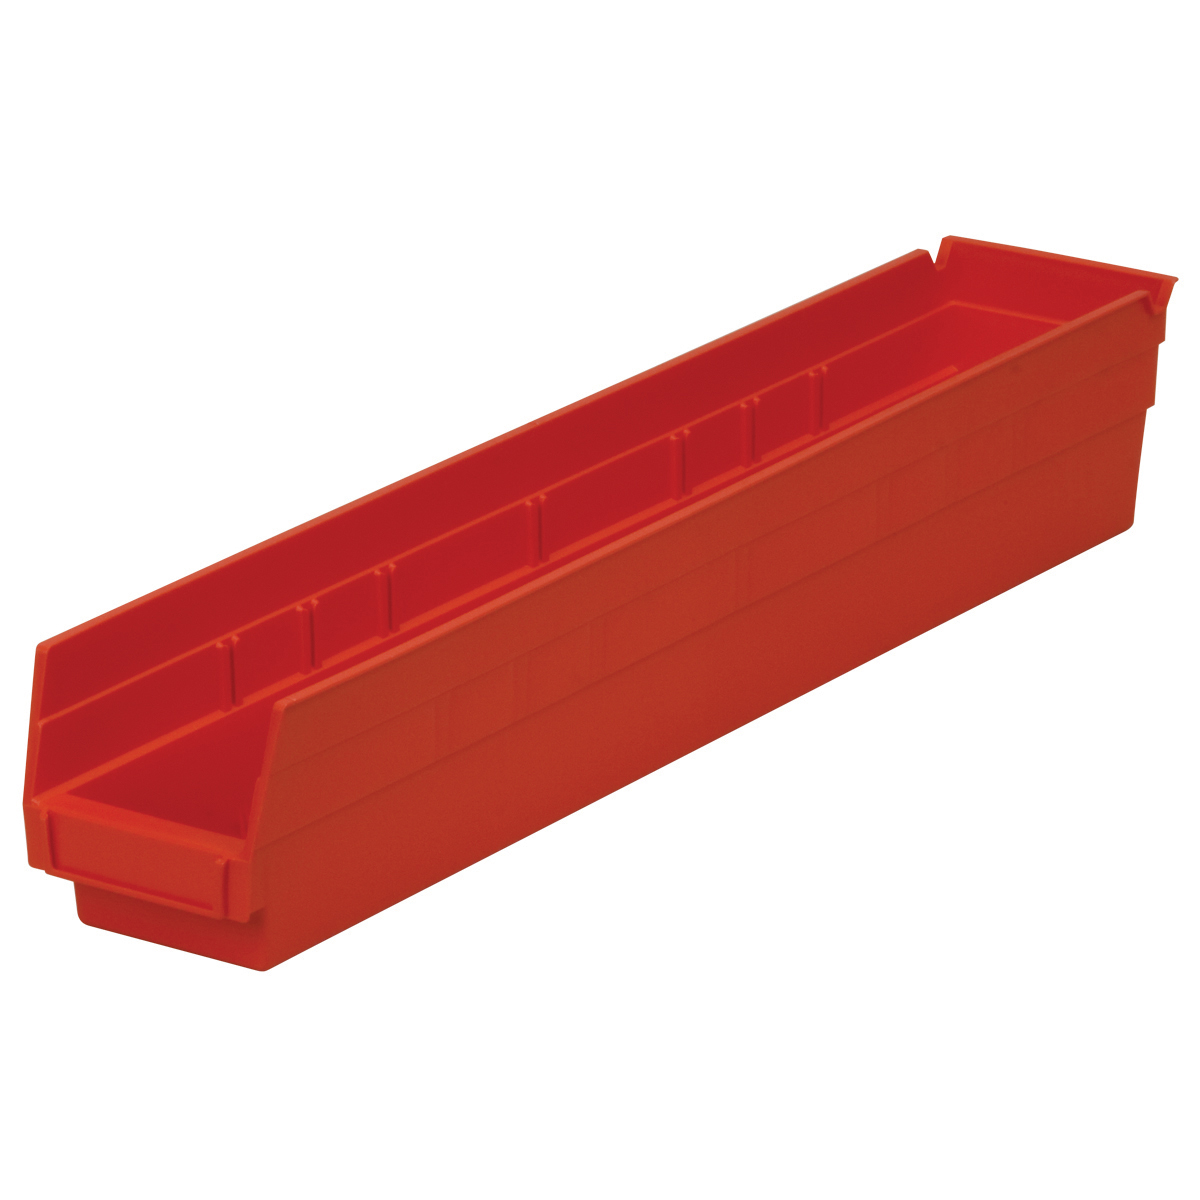 Shelf Bin 23-5/8 x 4-1/8 x 4, Red (30124RED).  This item sold in carton quantities of 12.